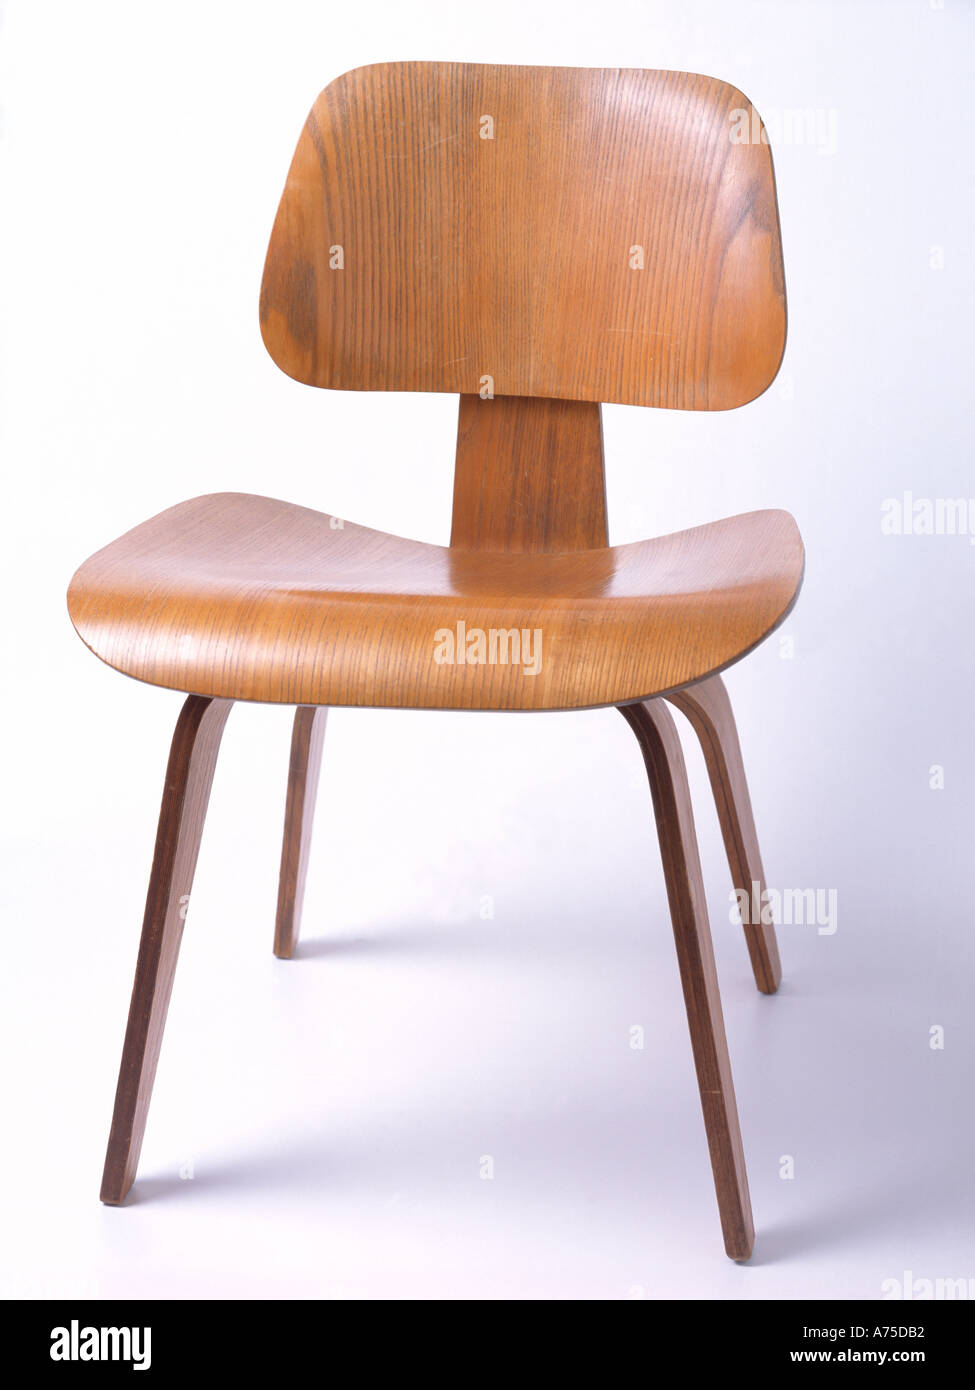 Stupendous Close Up Of Charles Eames Dcw Dining Chair Stock Photo Pdpeps Interior Chair Design Pdpepsorg